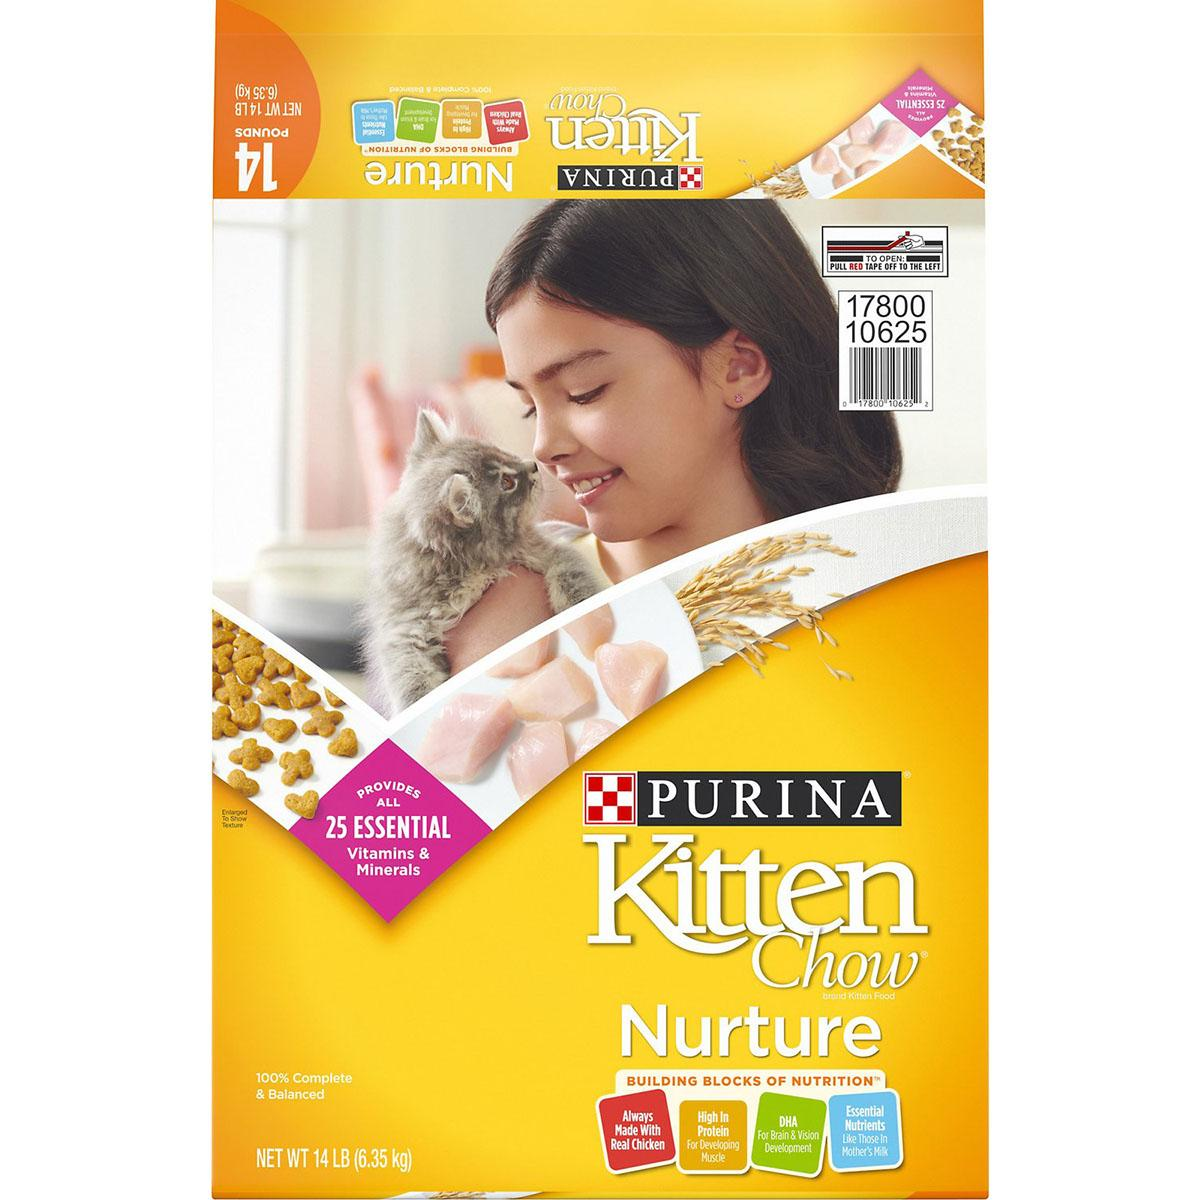 Purina Kitten Chow Nurture Dry Cat Food